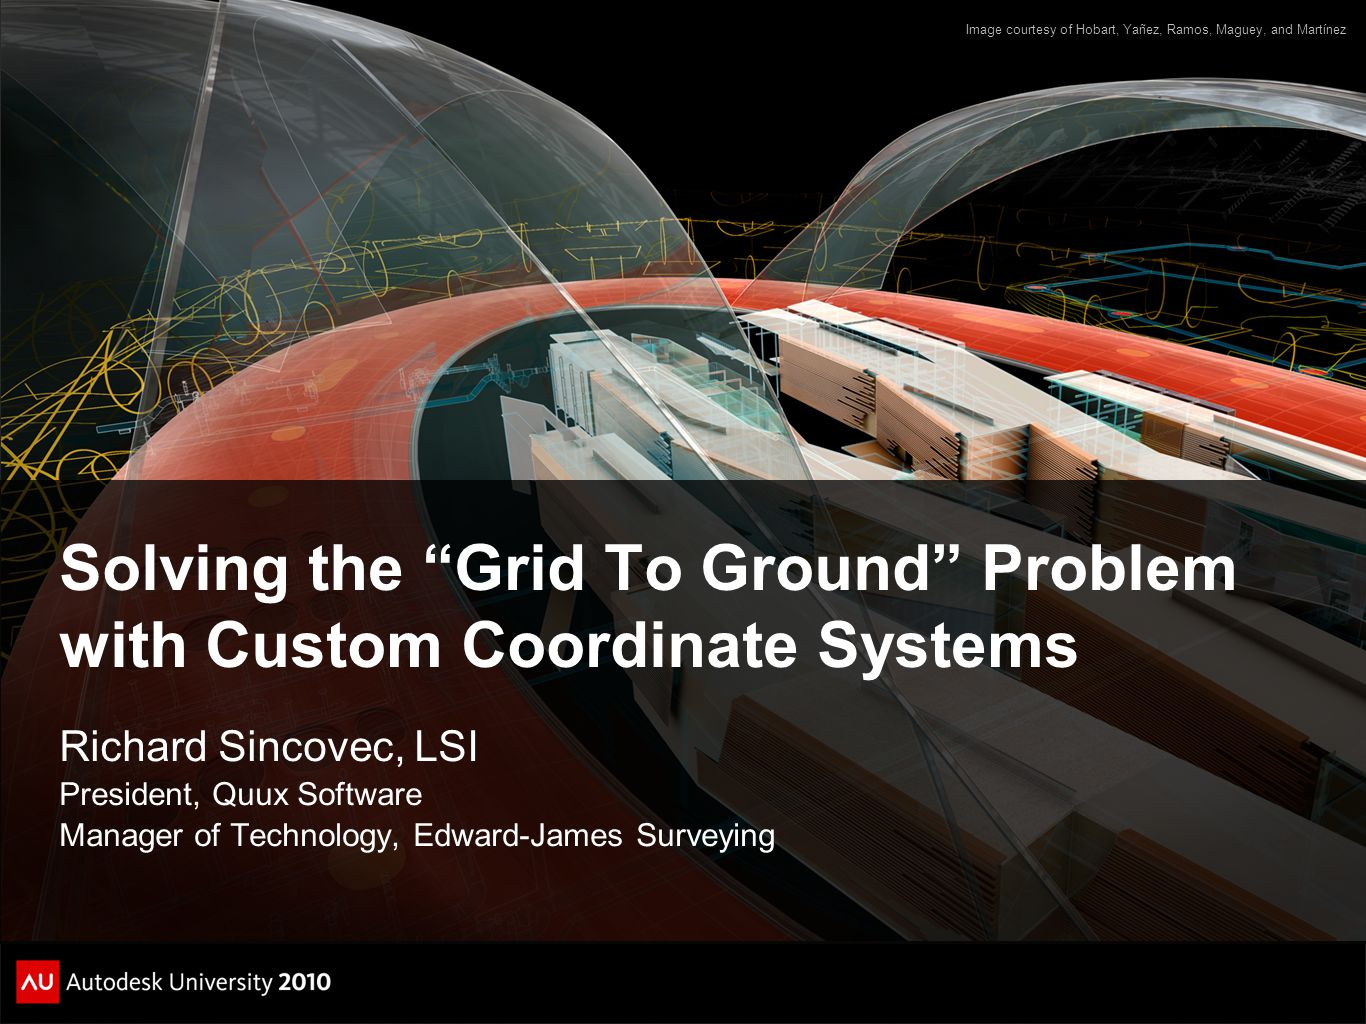 Solving the Grid To Ground Problem with Custom Coordinate Systems